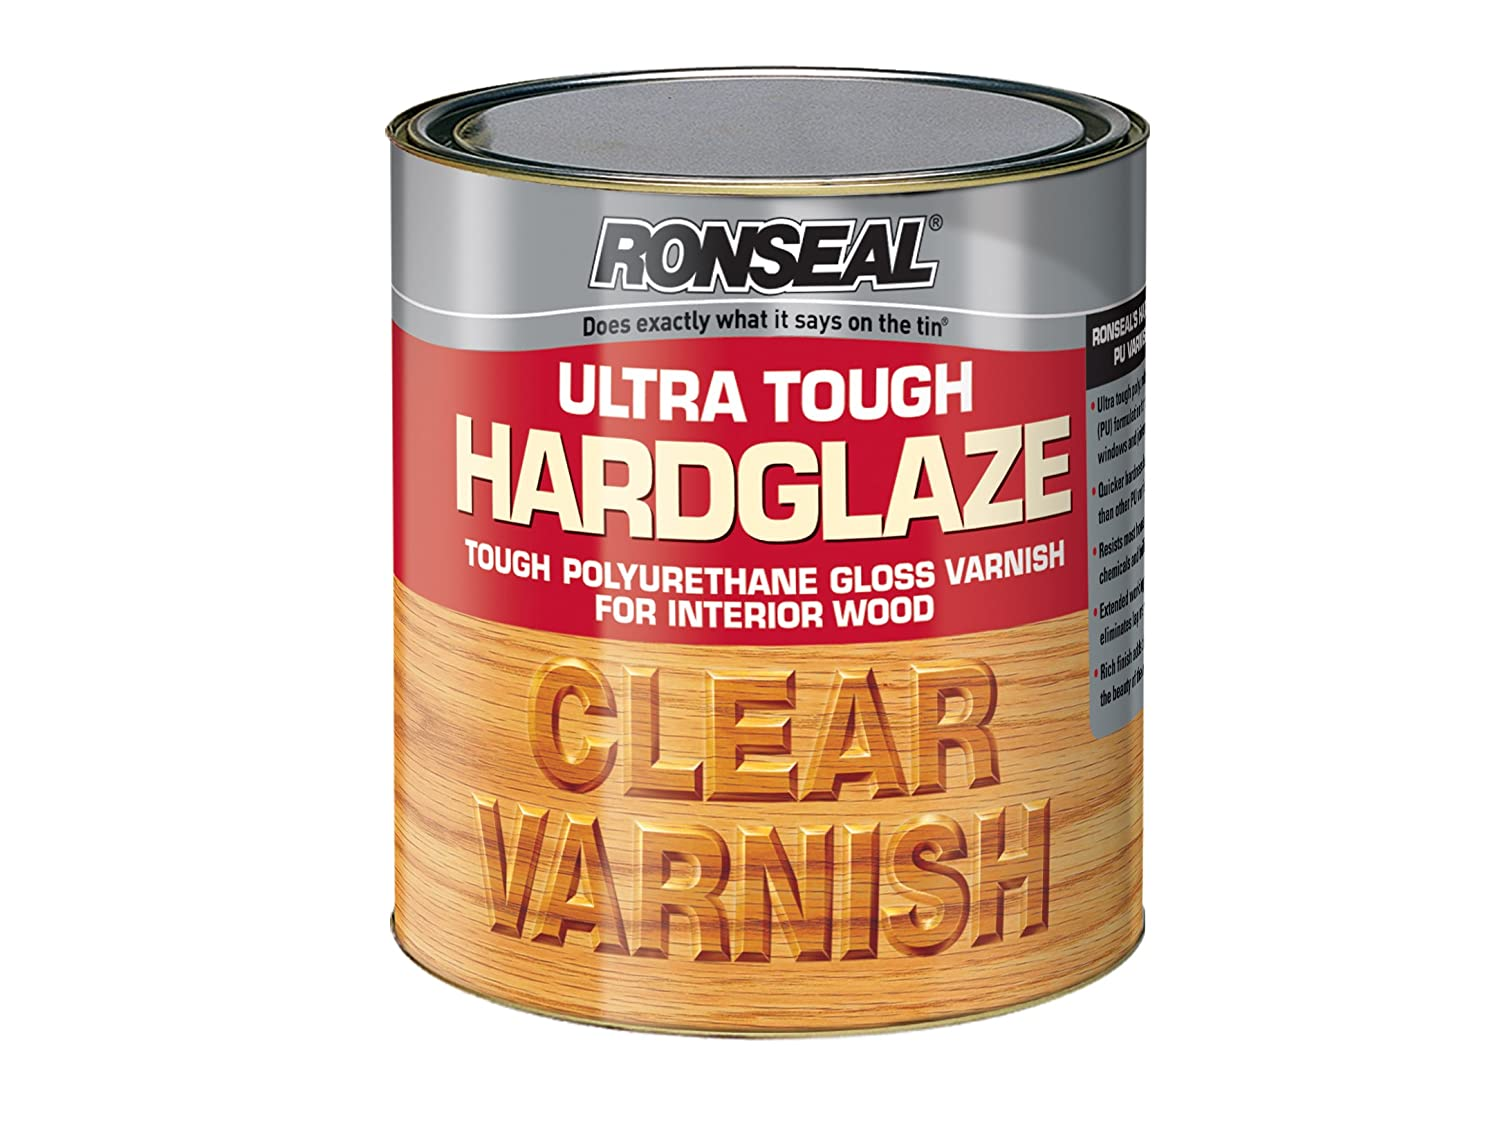 Ronseal UTVHG750 750ml Ultra Tough Hardglaze Internal Clear Gloss Varnish RSLUTVHG750